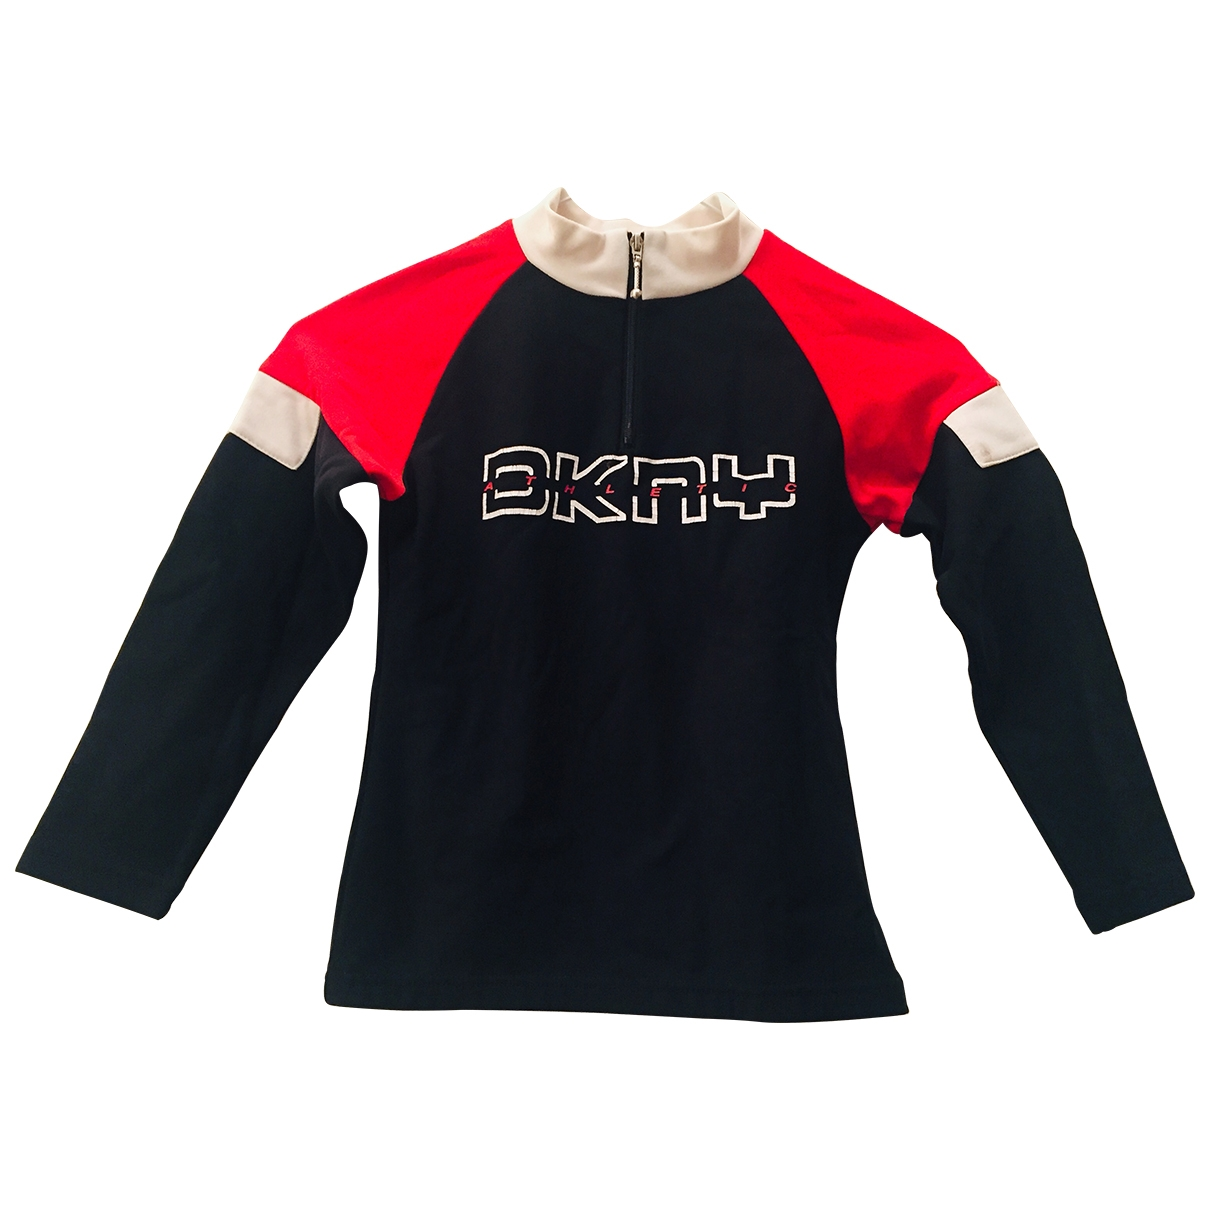 Dkny \N Black  top for Kids 6 years - until 45 inches UK